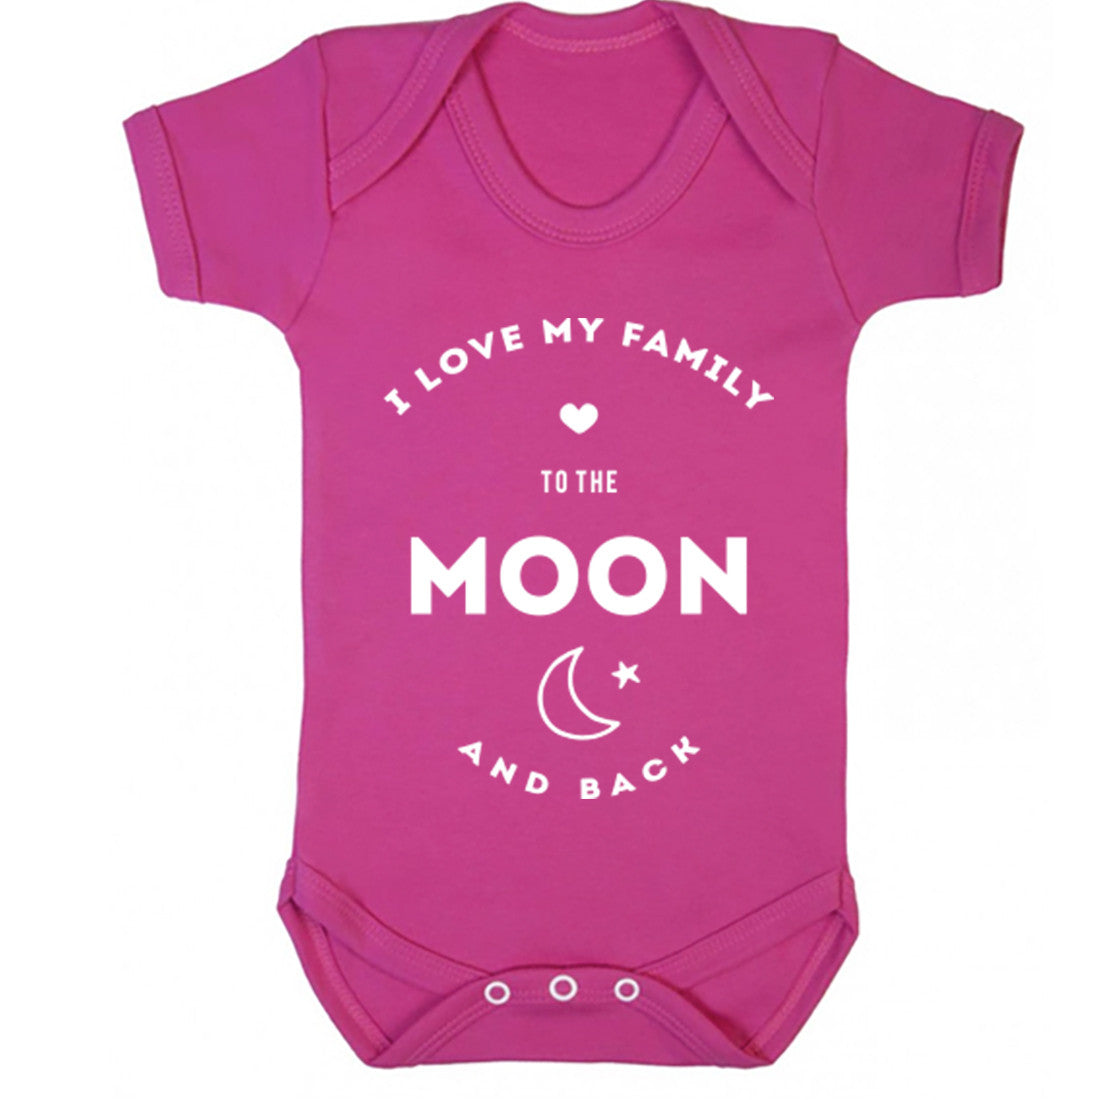 I Love My Family To The Moon And Back Baby Vest K0404 - Illustrated Identity Ltd.